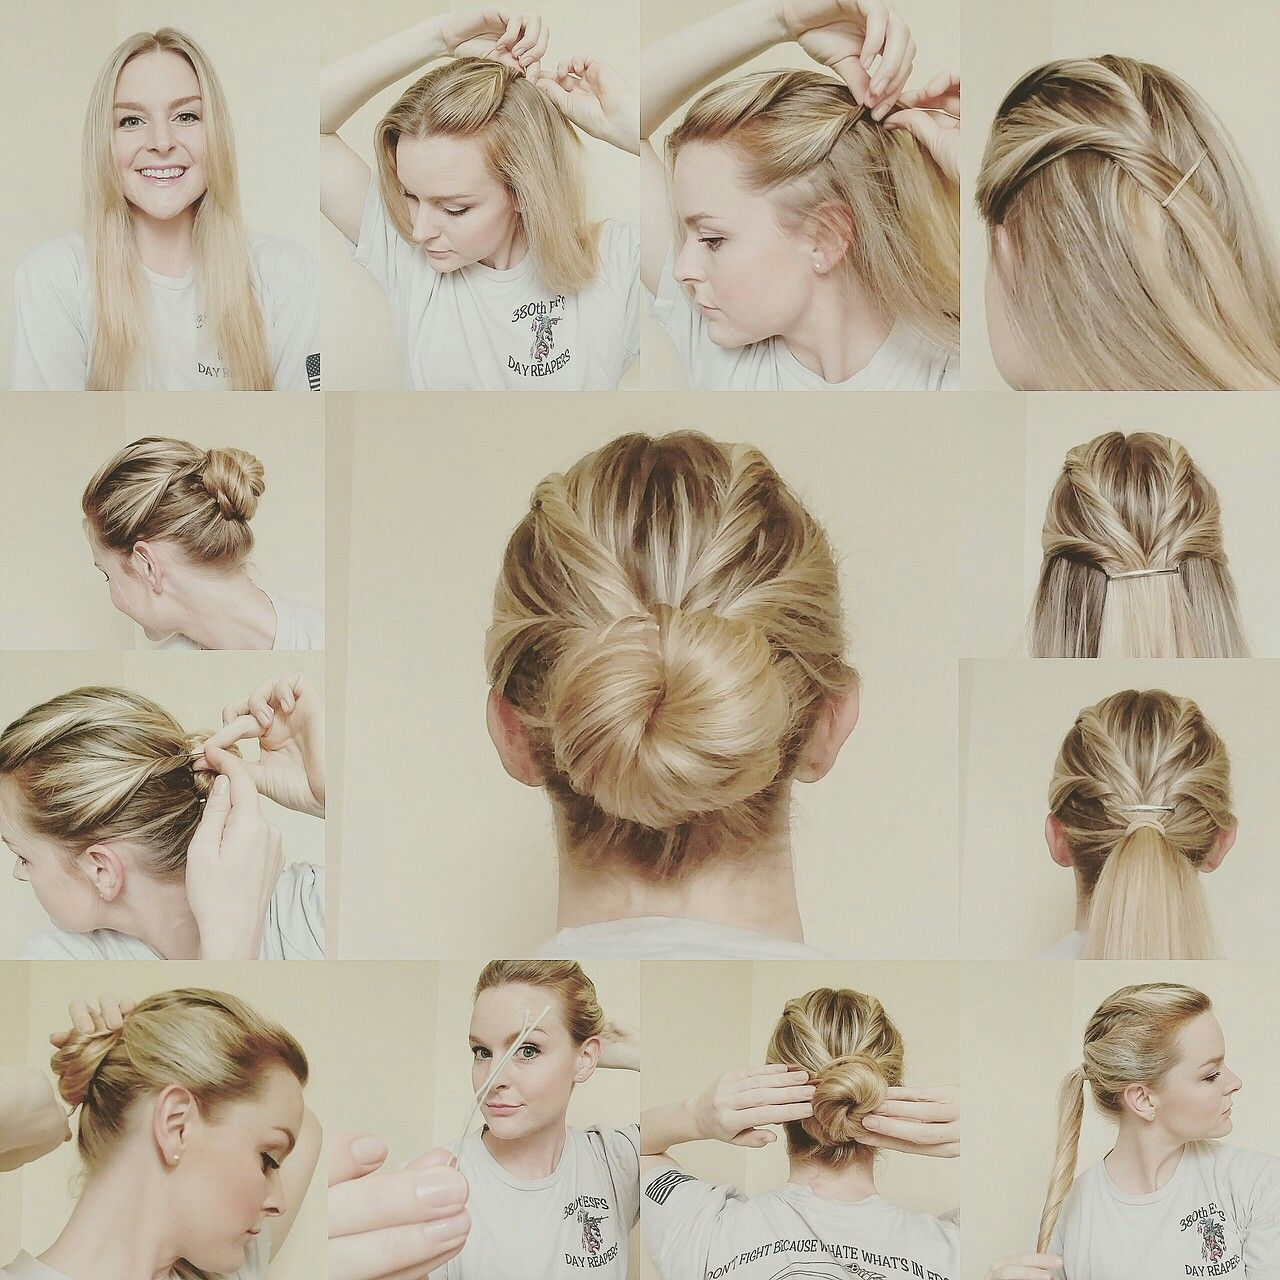 Twisty bun-updo (great for military) | Hair | Pinterest | Bun updo ...